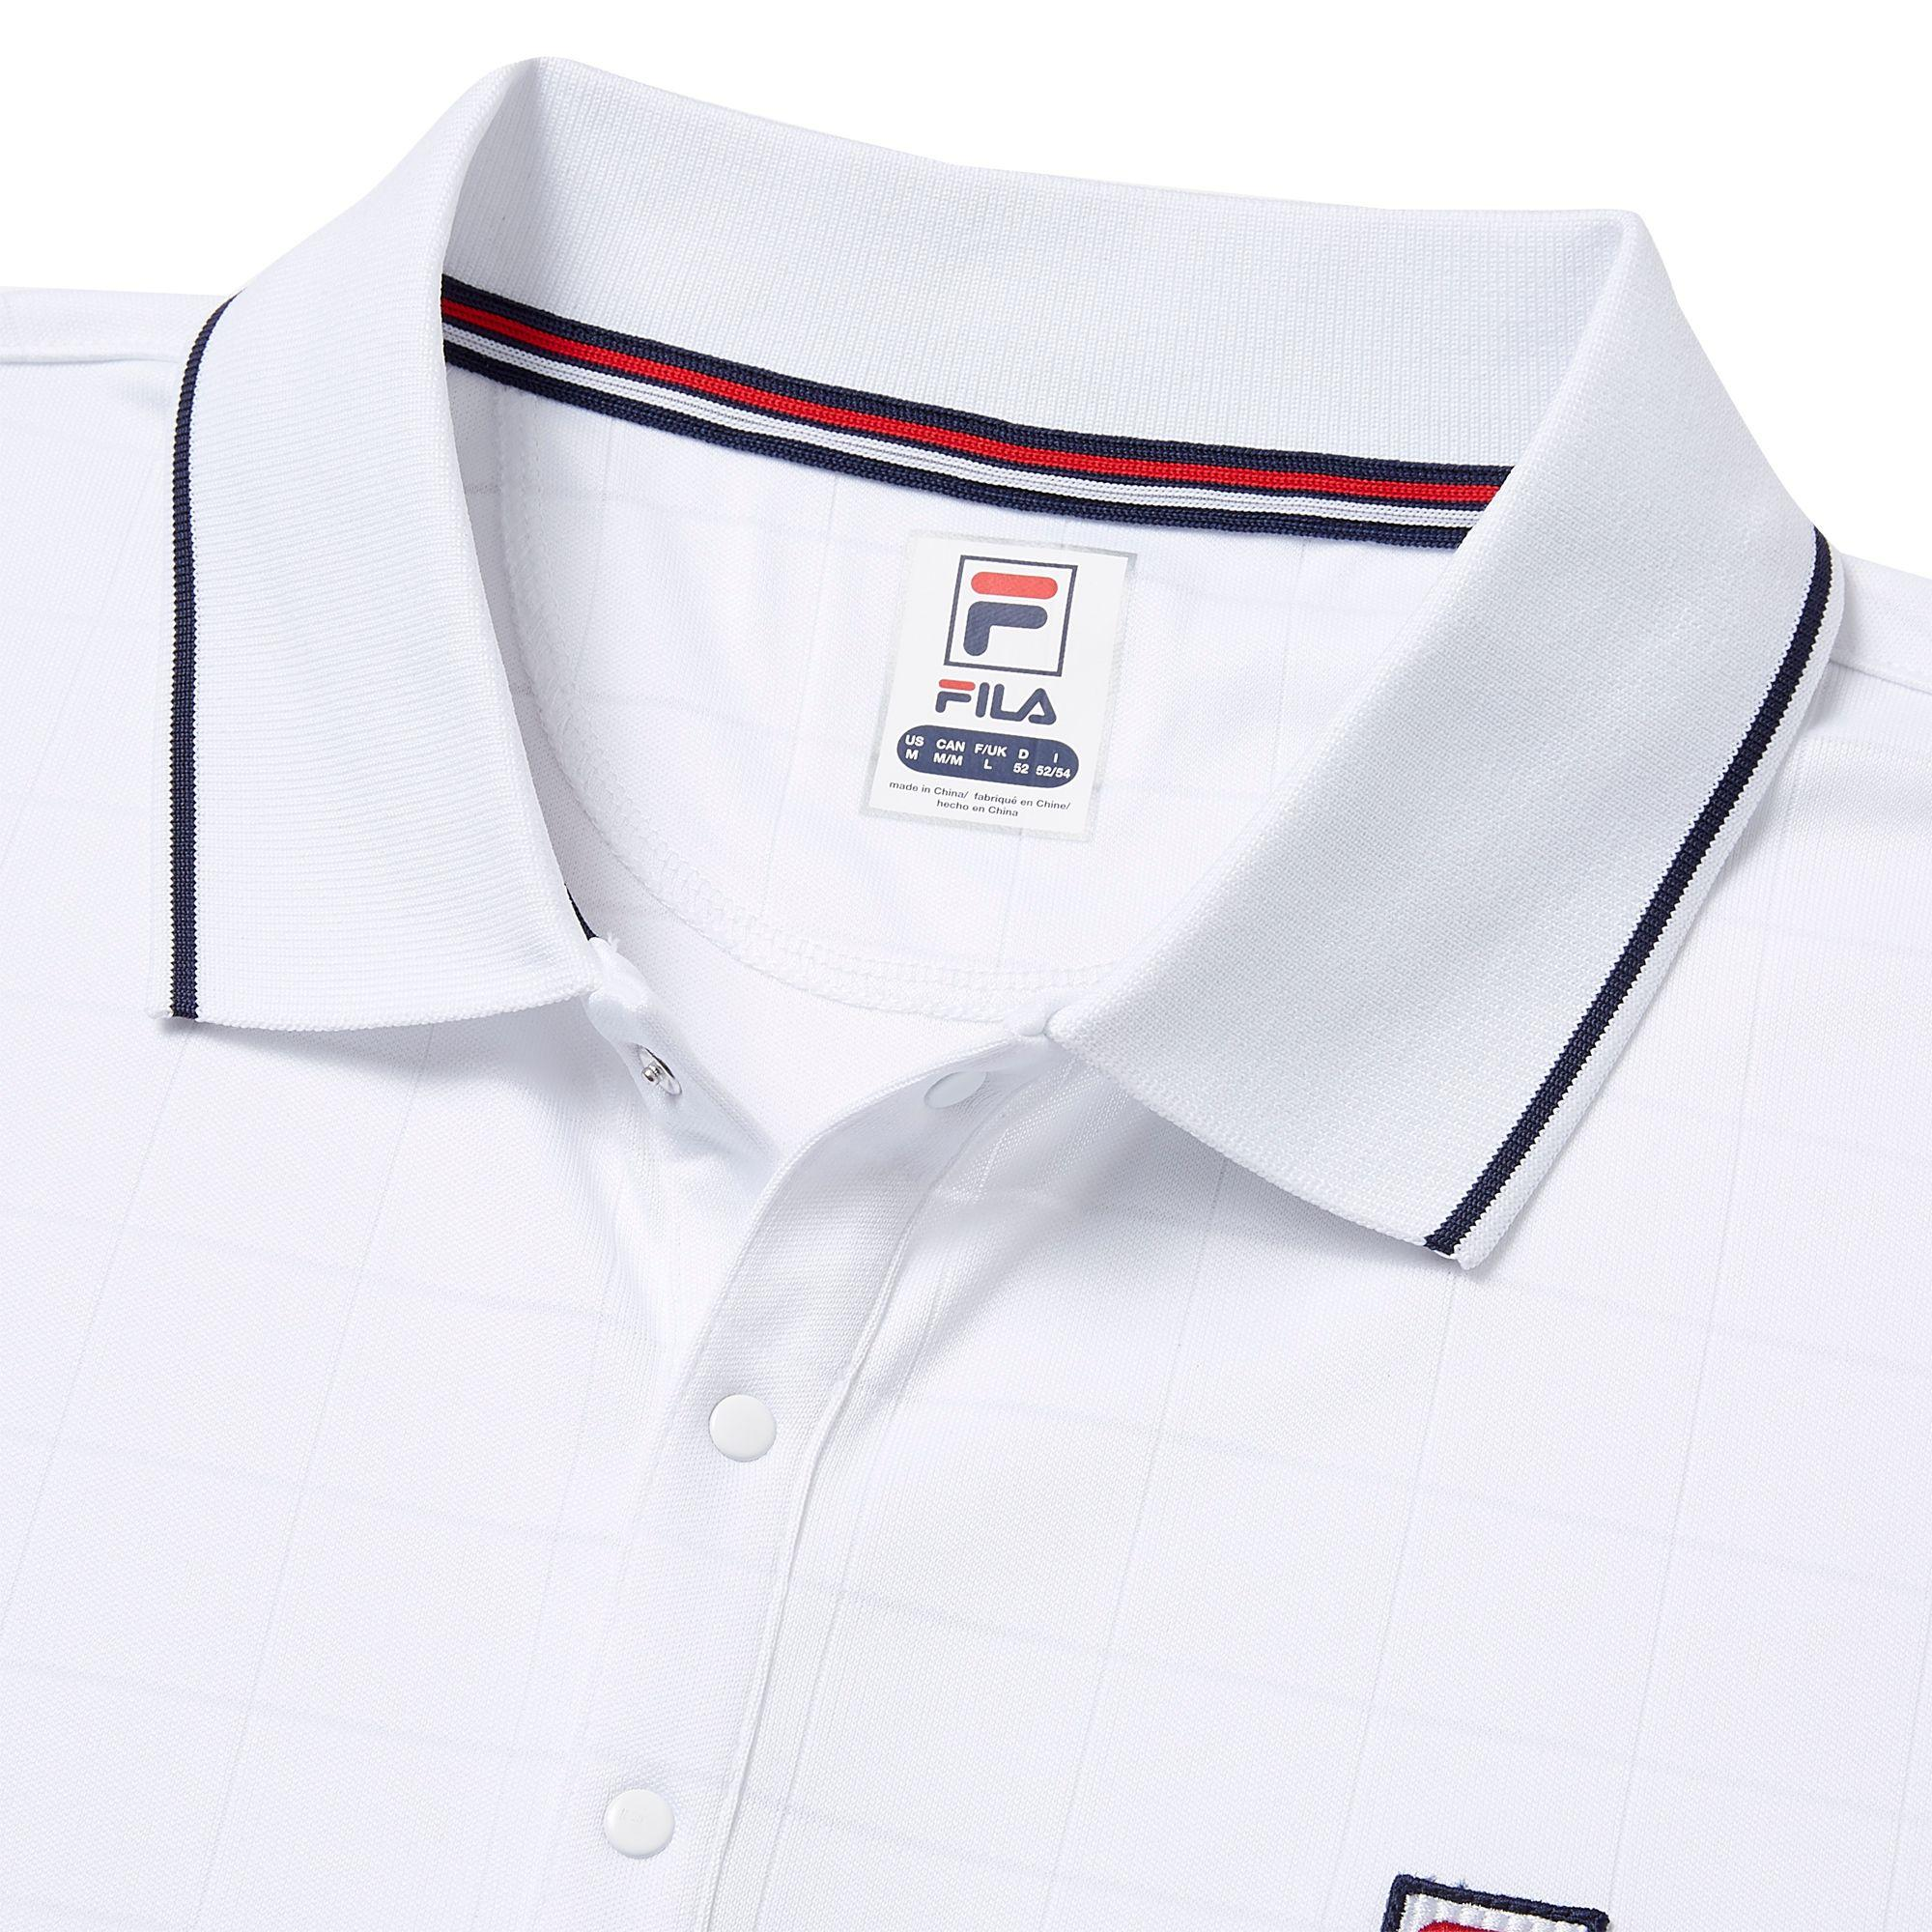 706327e1182 Fila - White Heritage Drop Needle Tennis Polo for Men - Lyst. View  fullscreen